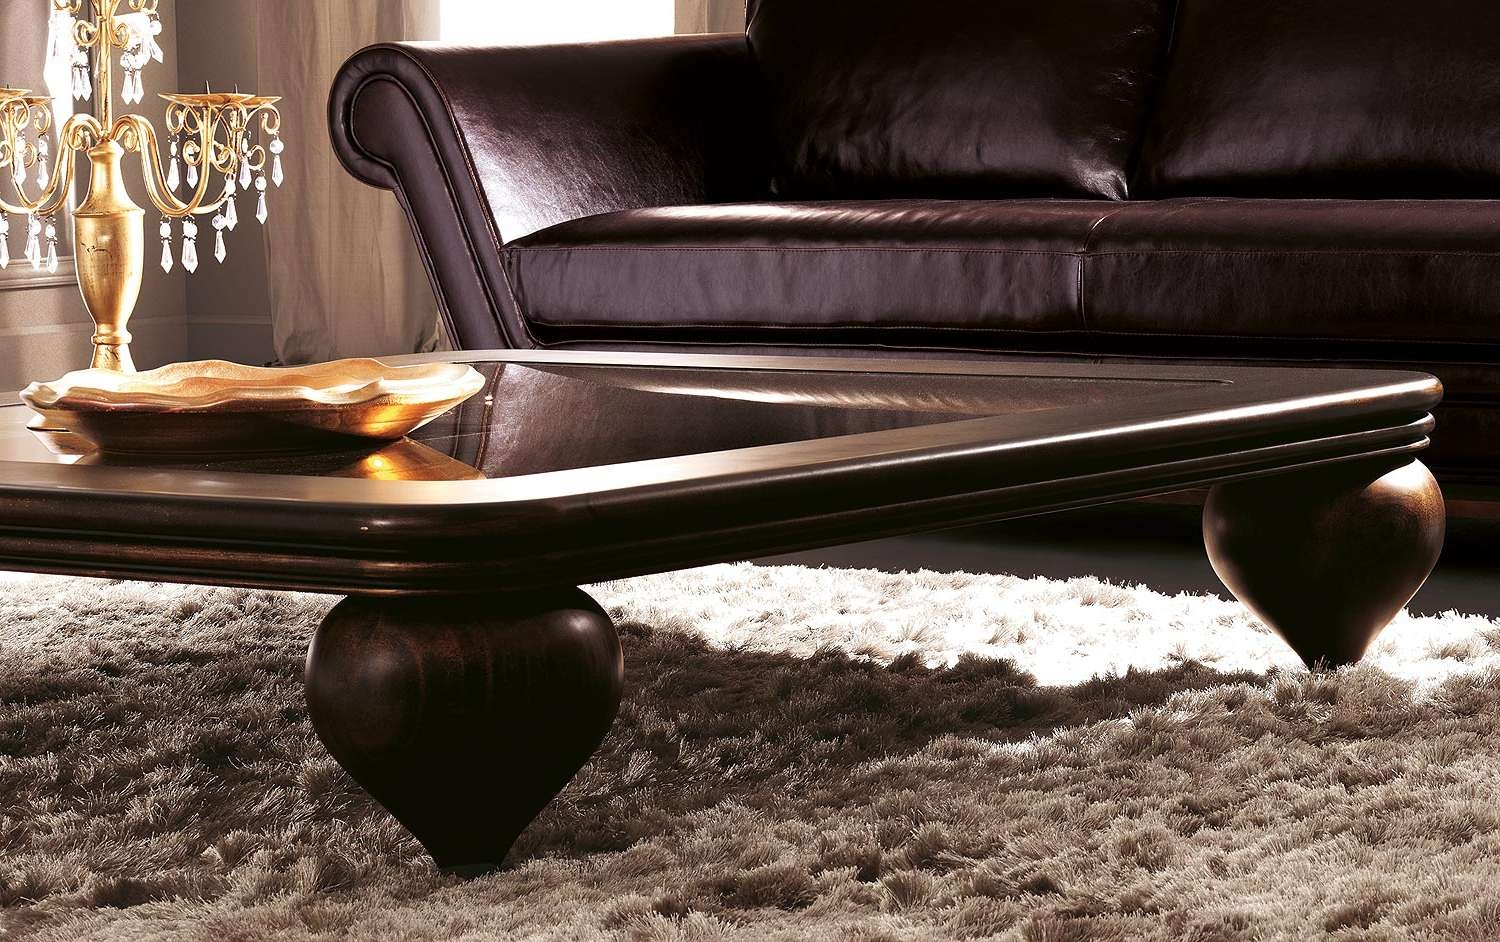 Widely Used Luxury Coffee Tables Throughout Orione Coffee Tables Cortezari Italian Luxury Furniture High End (View 9 of 20)